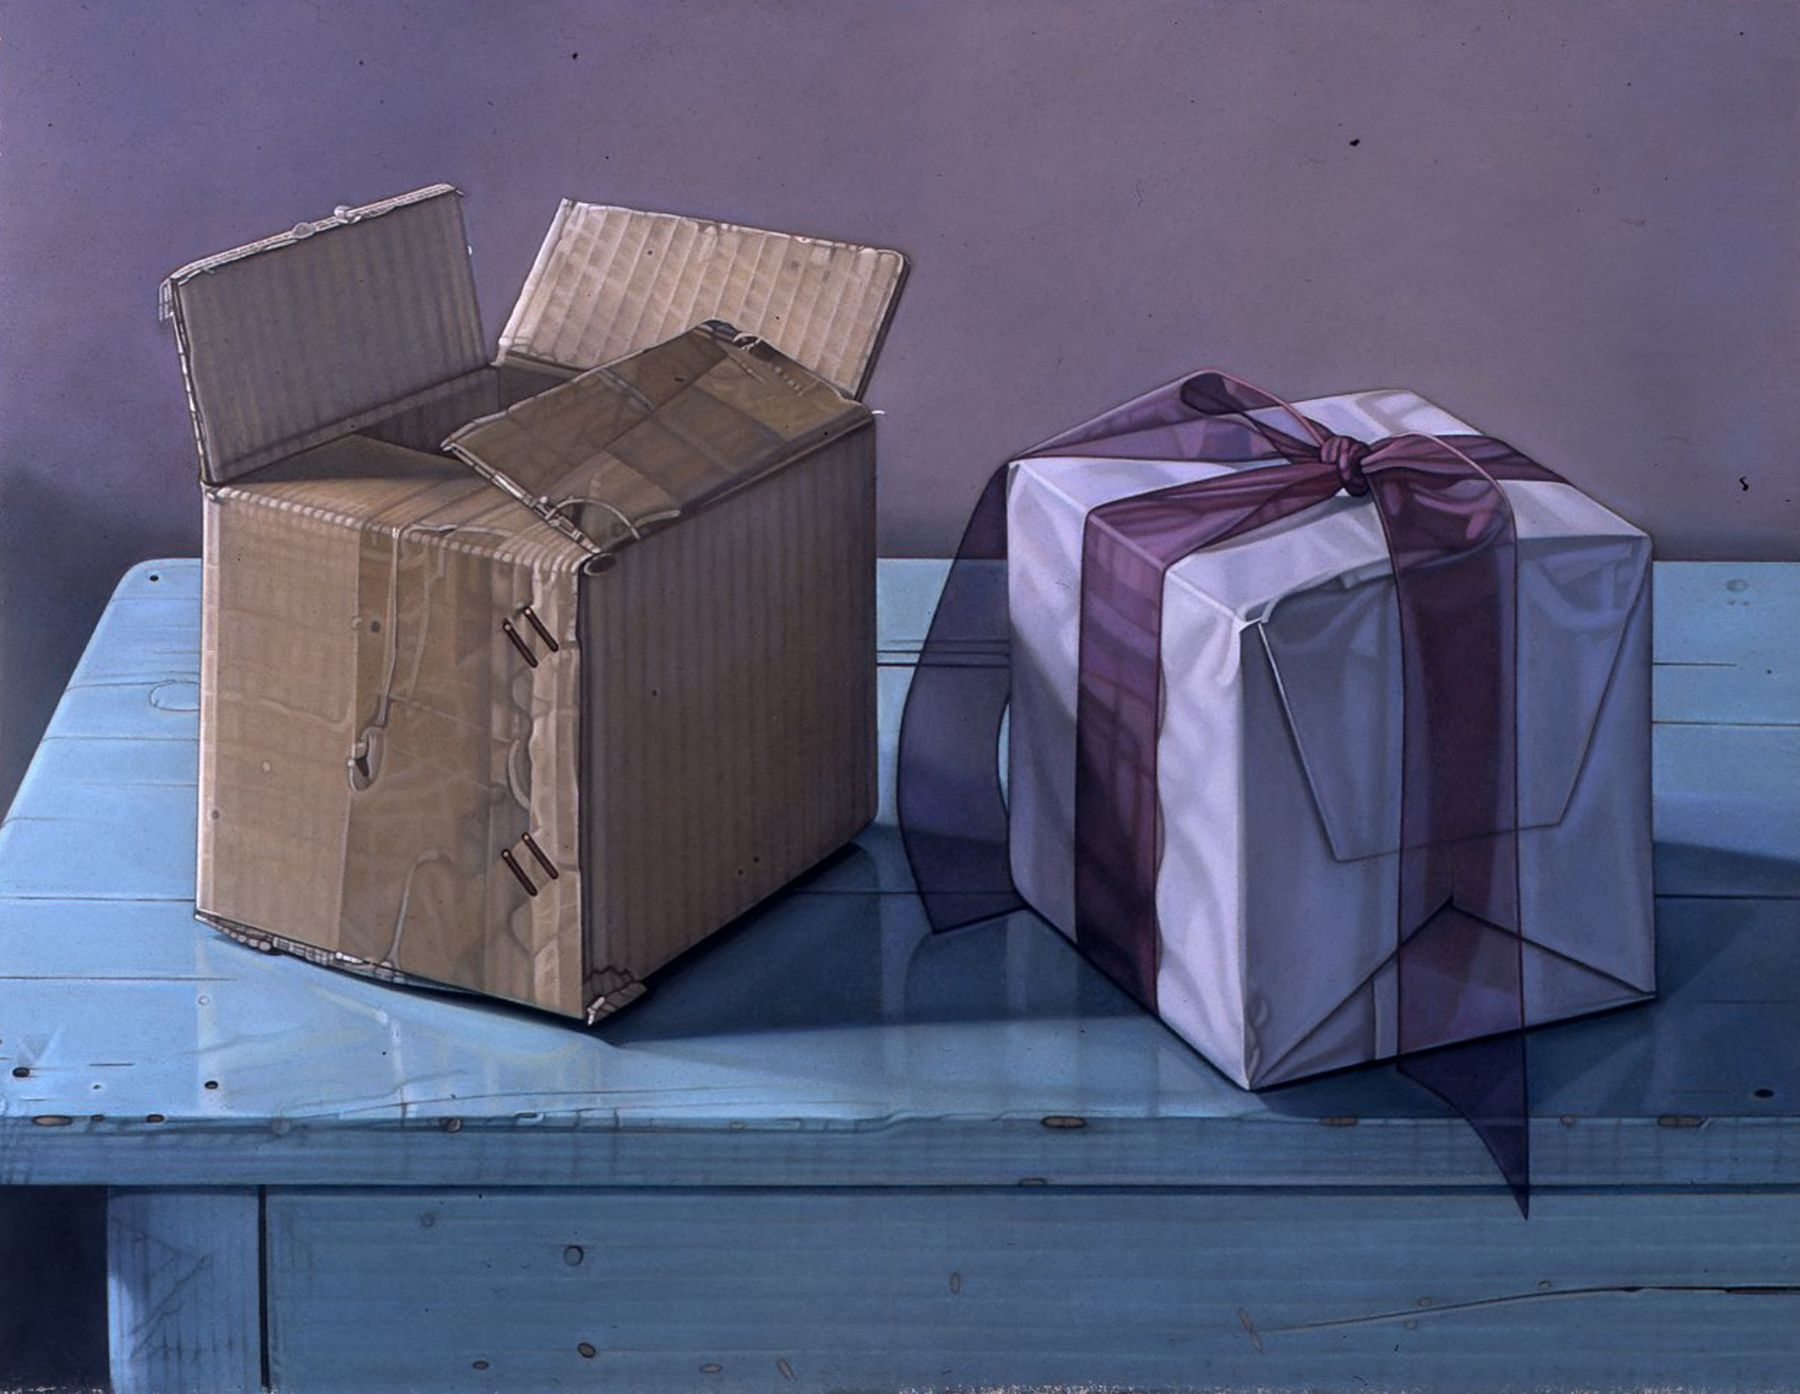 Jane Lund, Two Boxes, 2004, pastel on paper, 16 x 21 inches